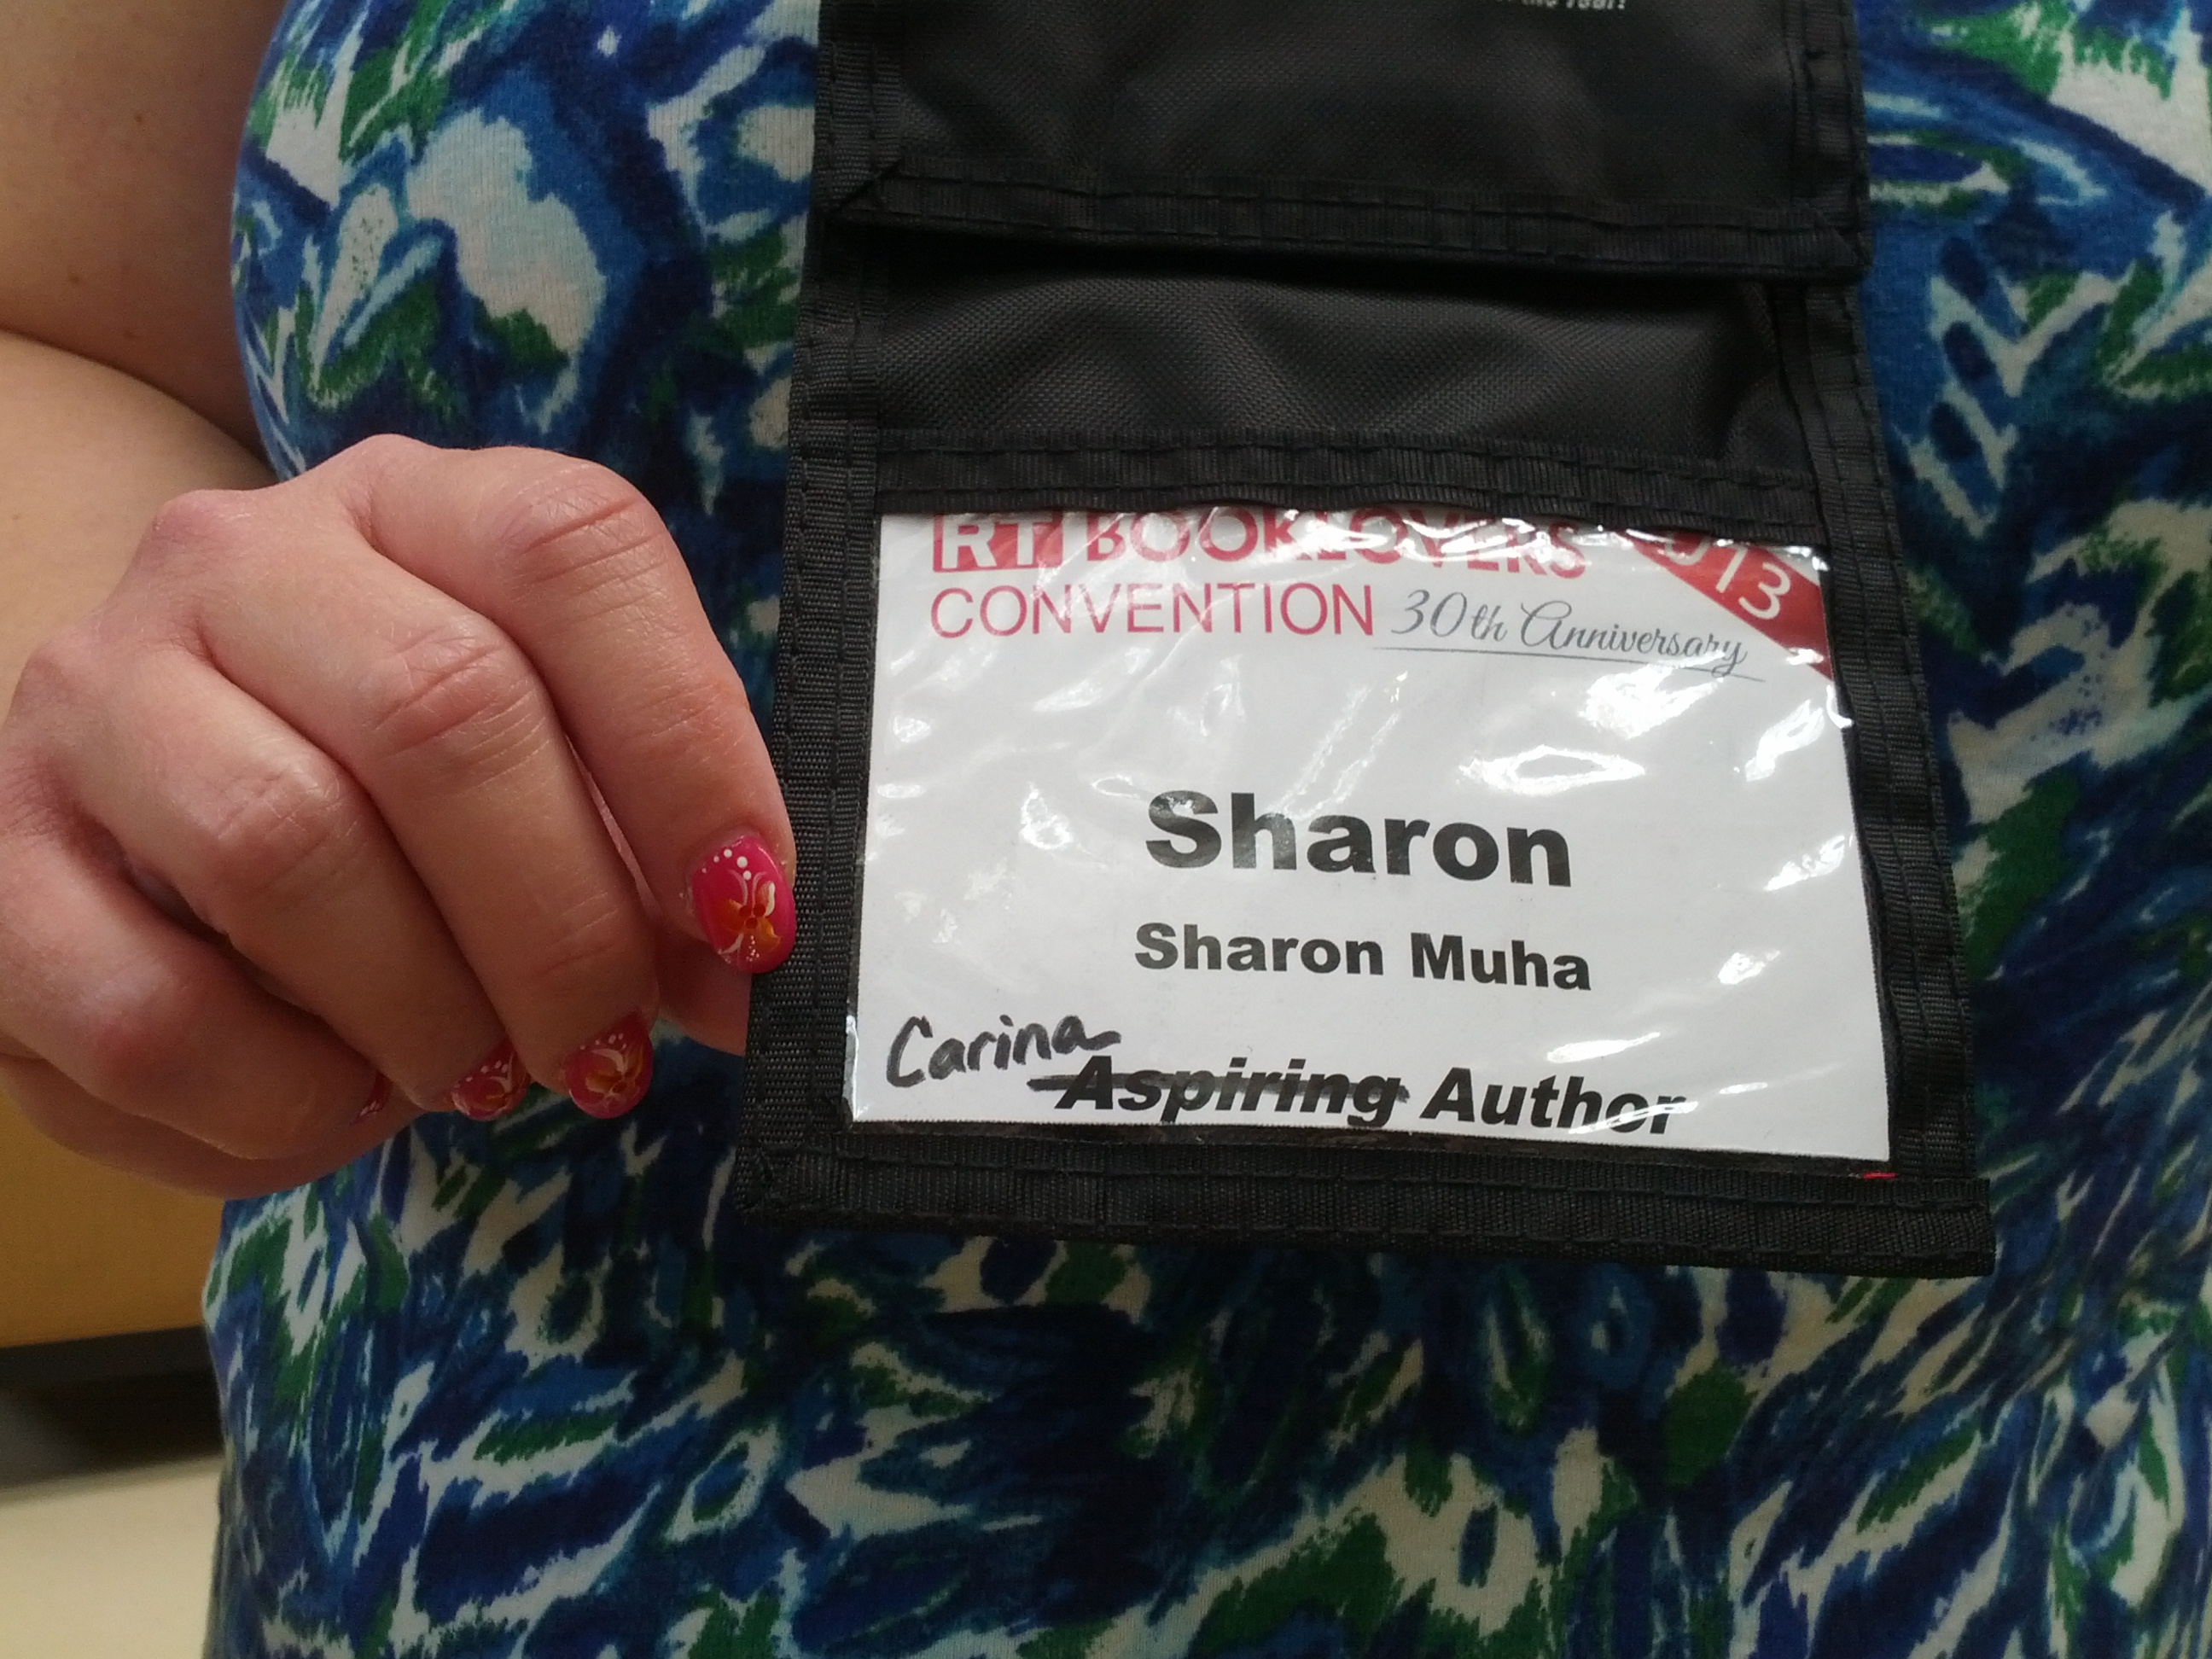 Sharon Muha's badge, with aspiring author crossed off in favor of Carina author.